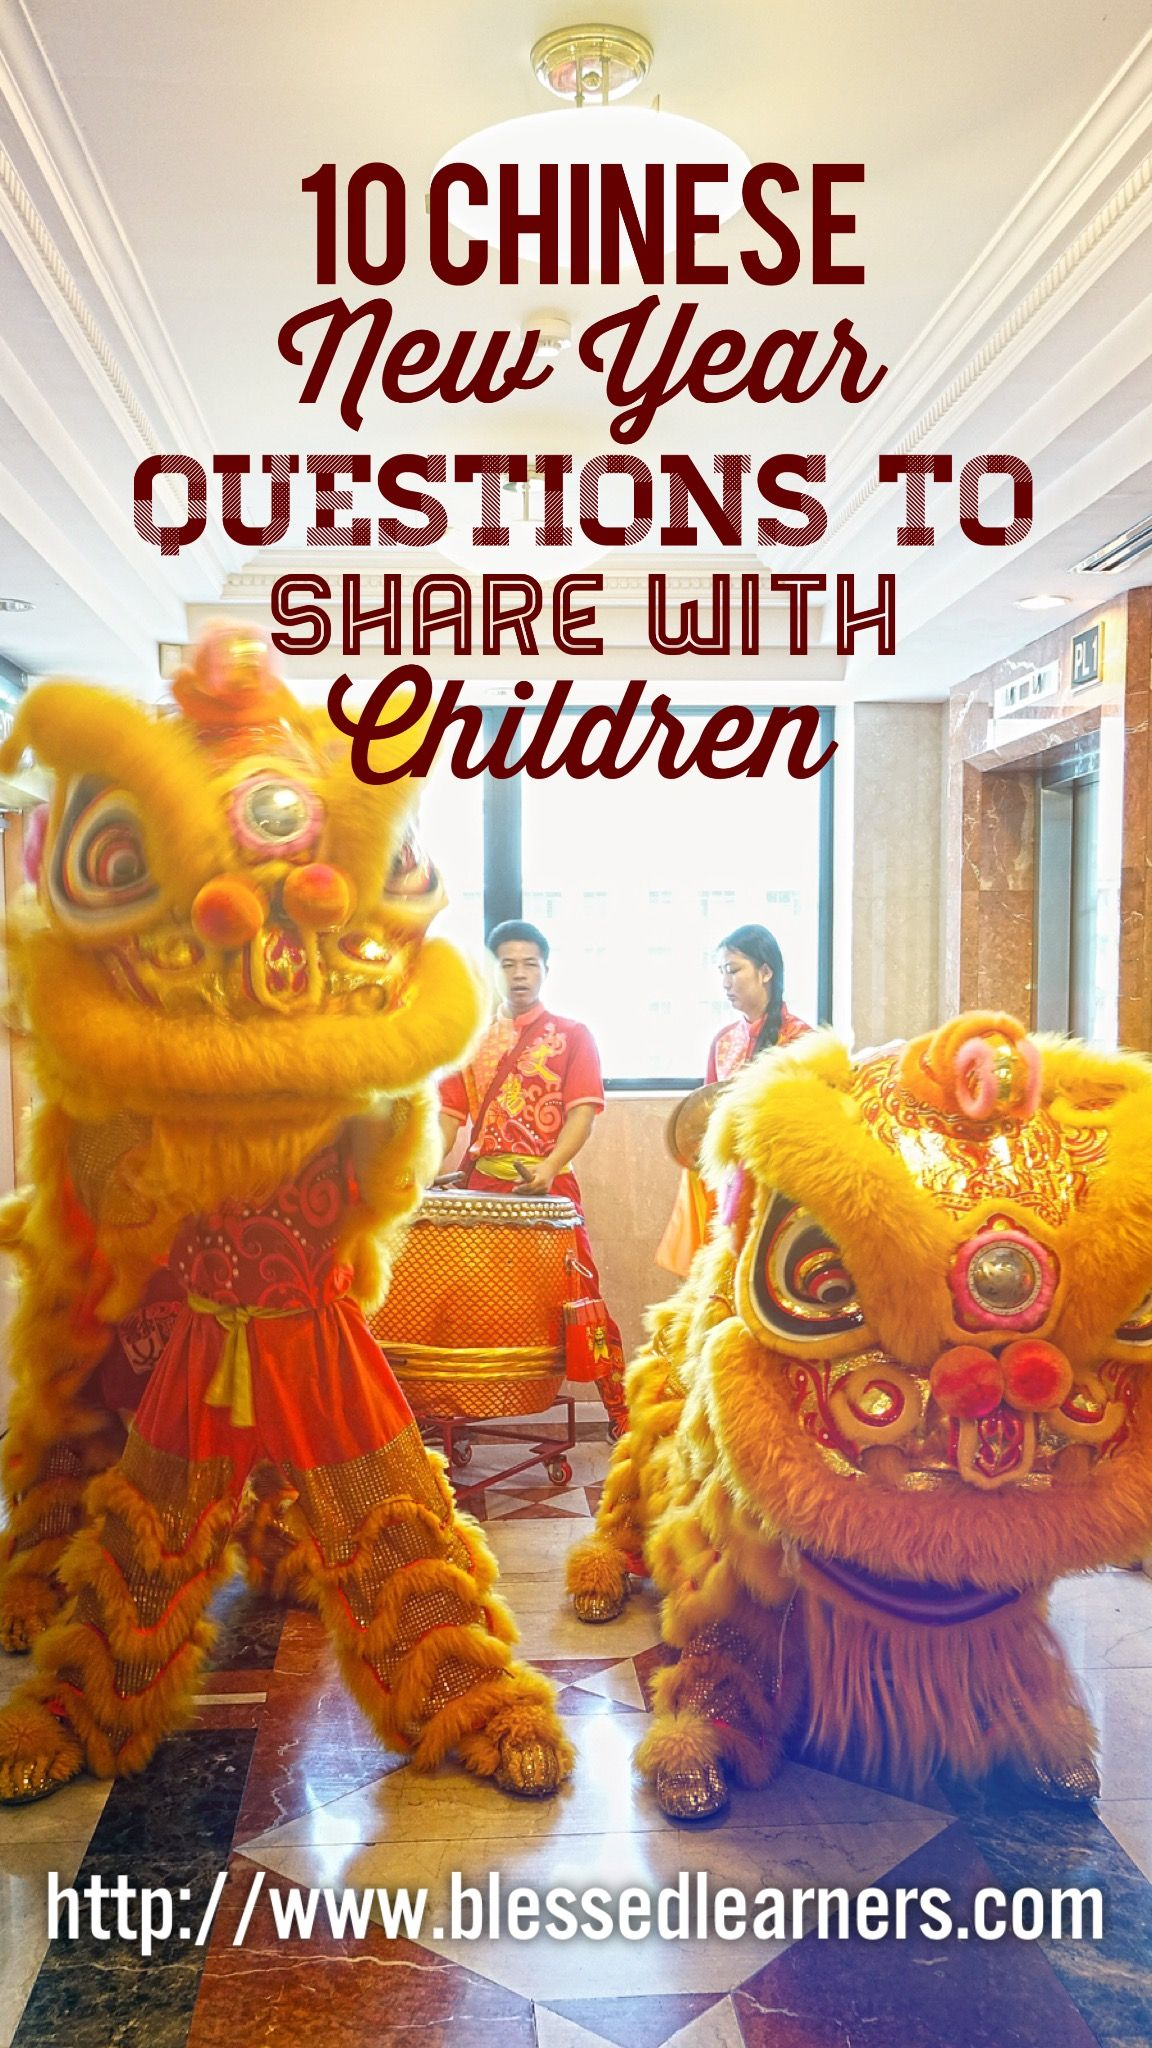 10 Chinese New Year Questions to Discuss with Children